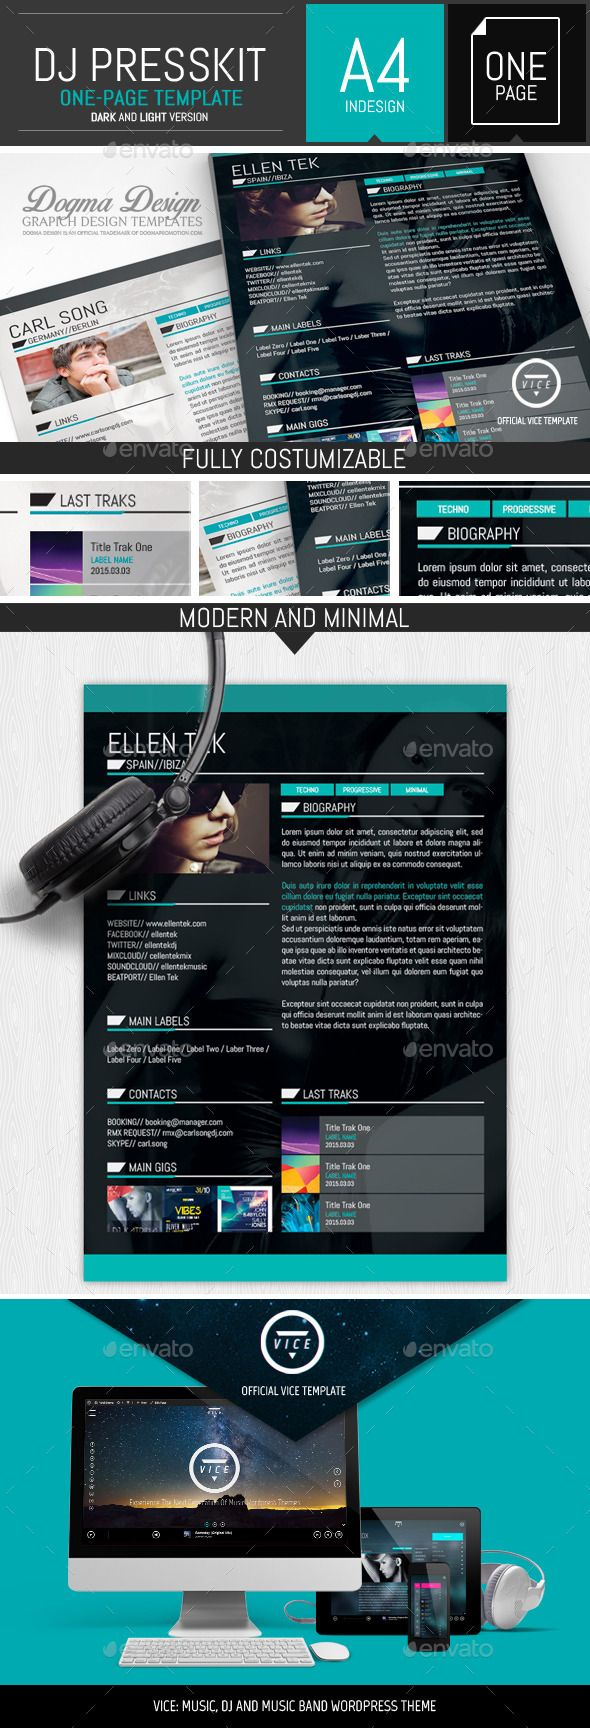 Best 25 press kits ideas on pinterest package design for Dj press kit template free